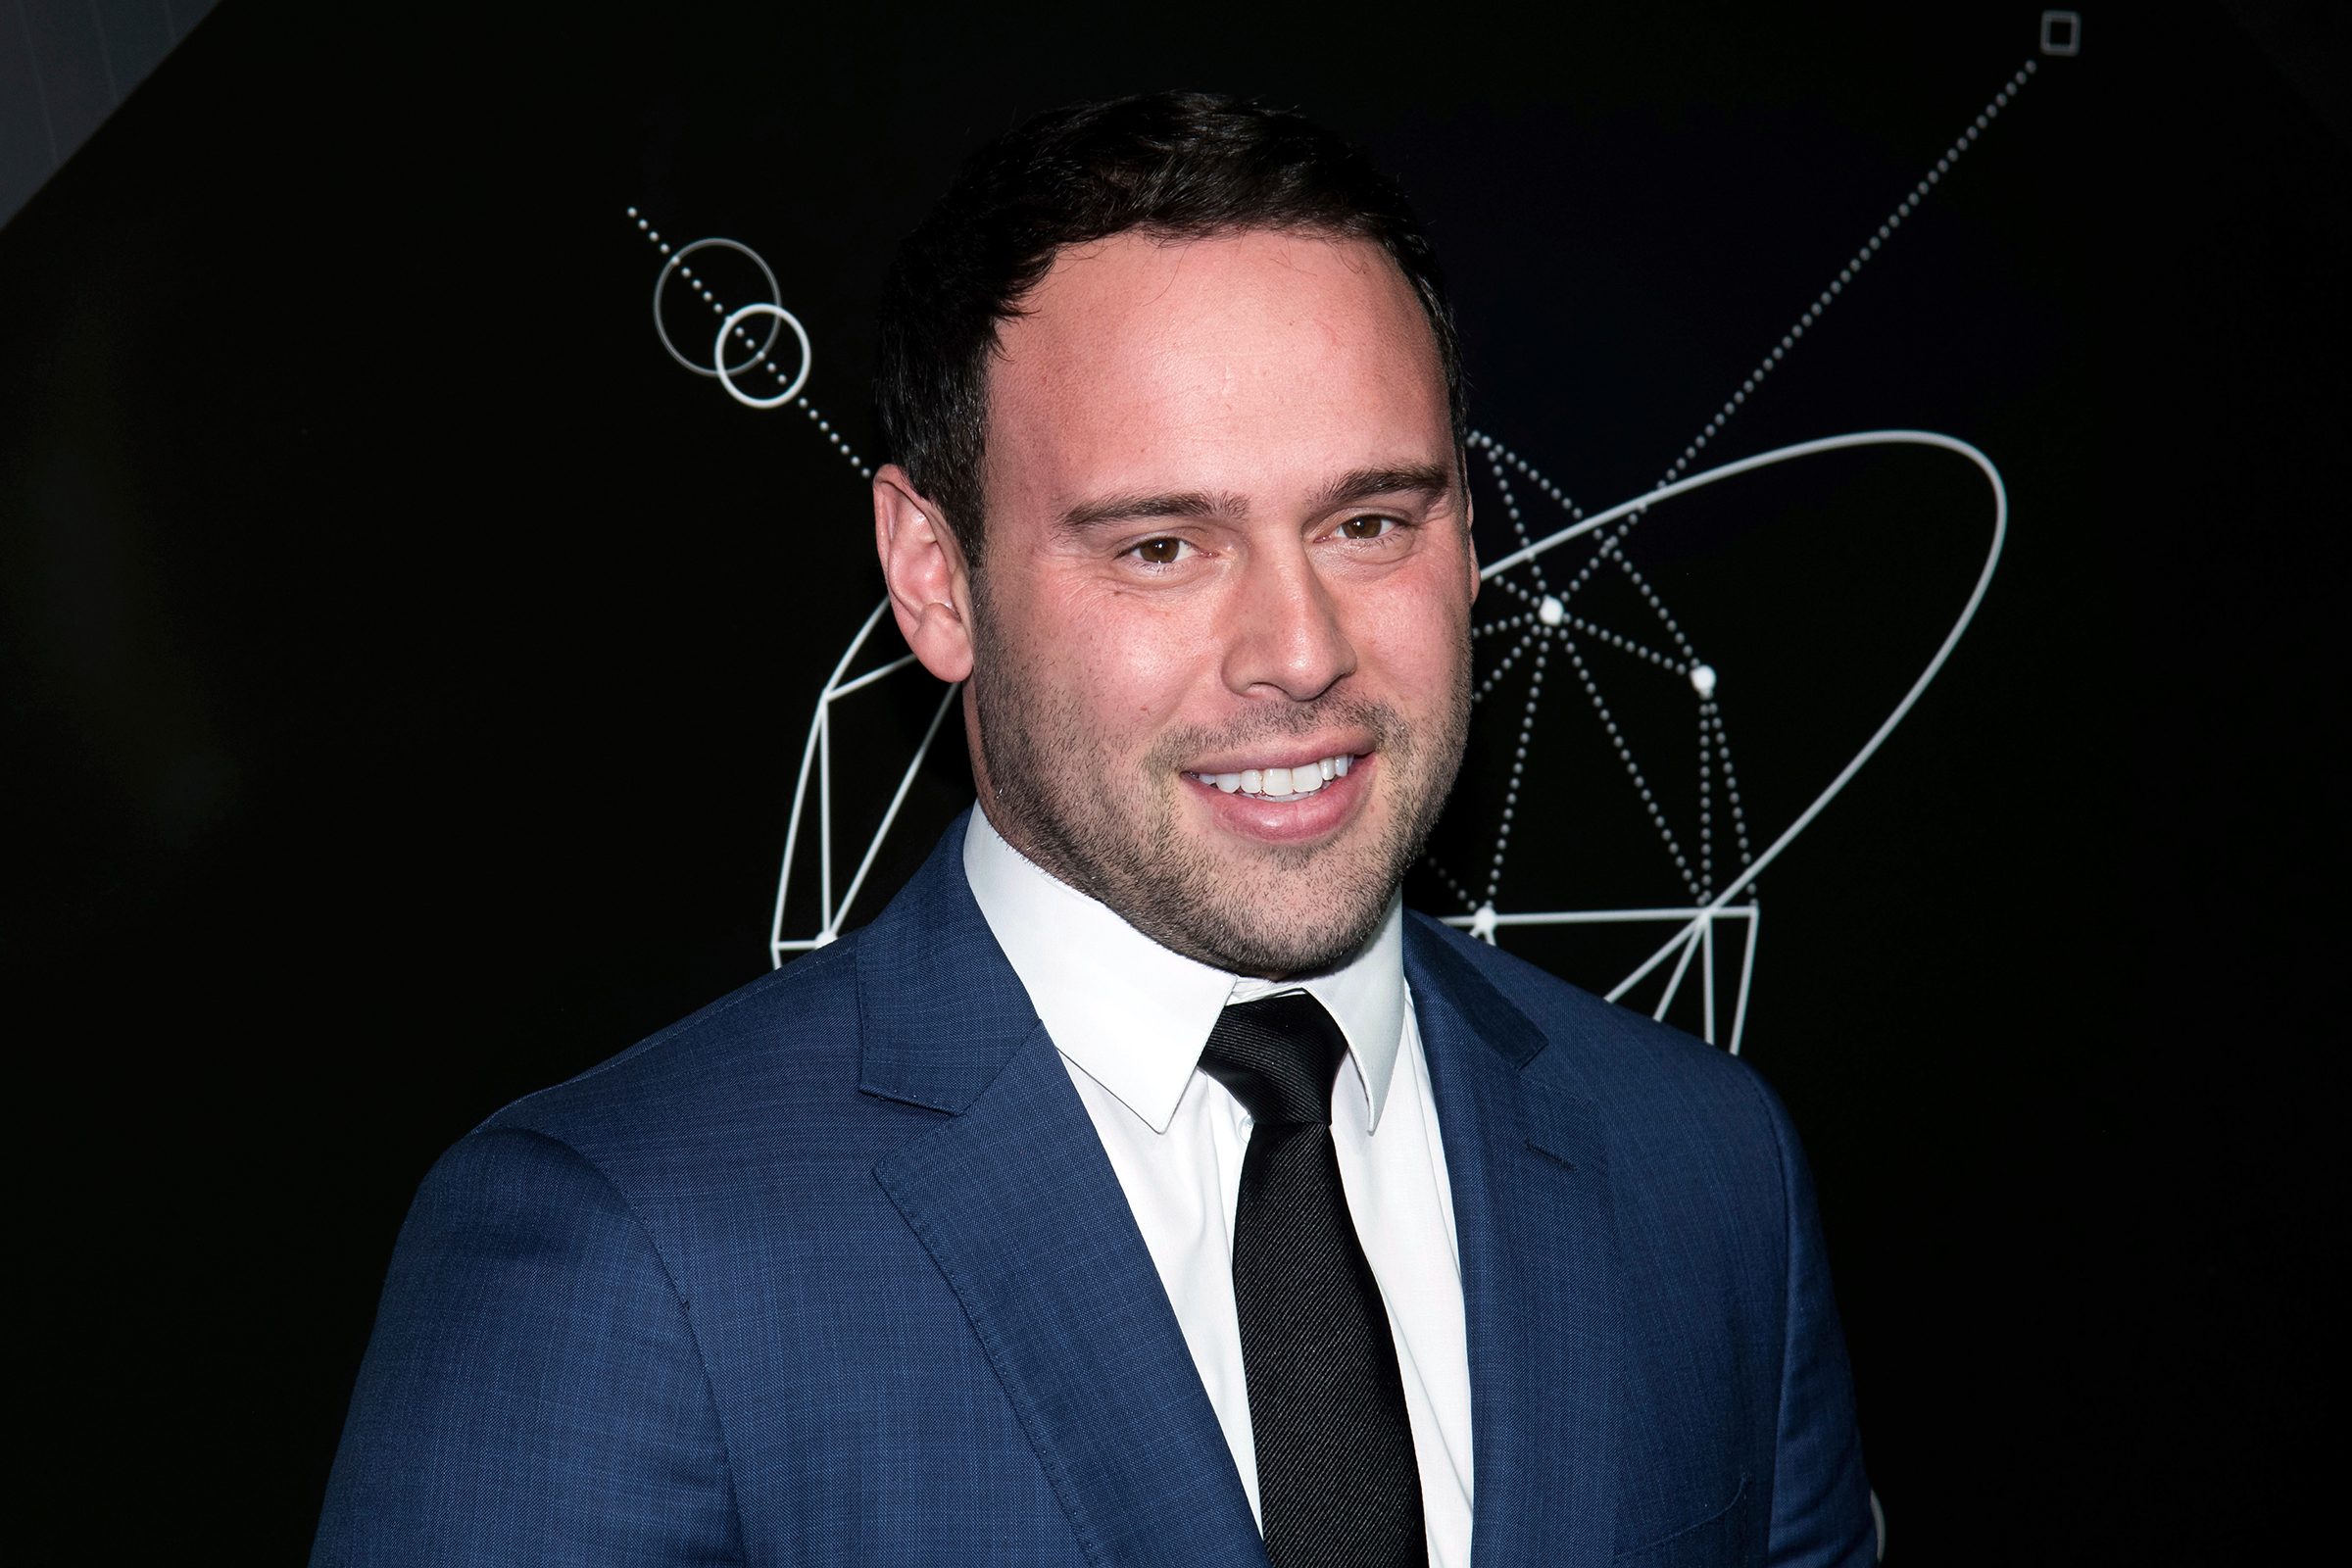 What's Scooter Braun Doing?